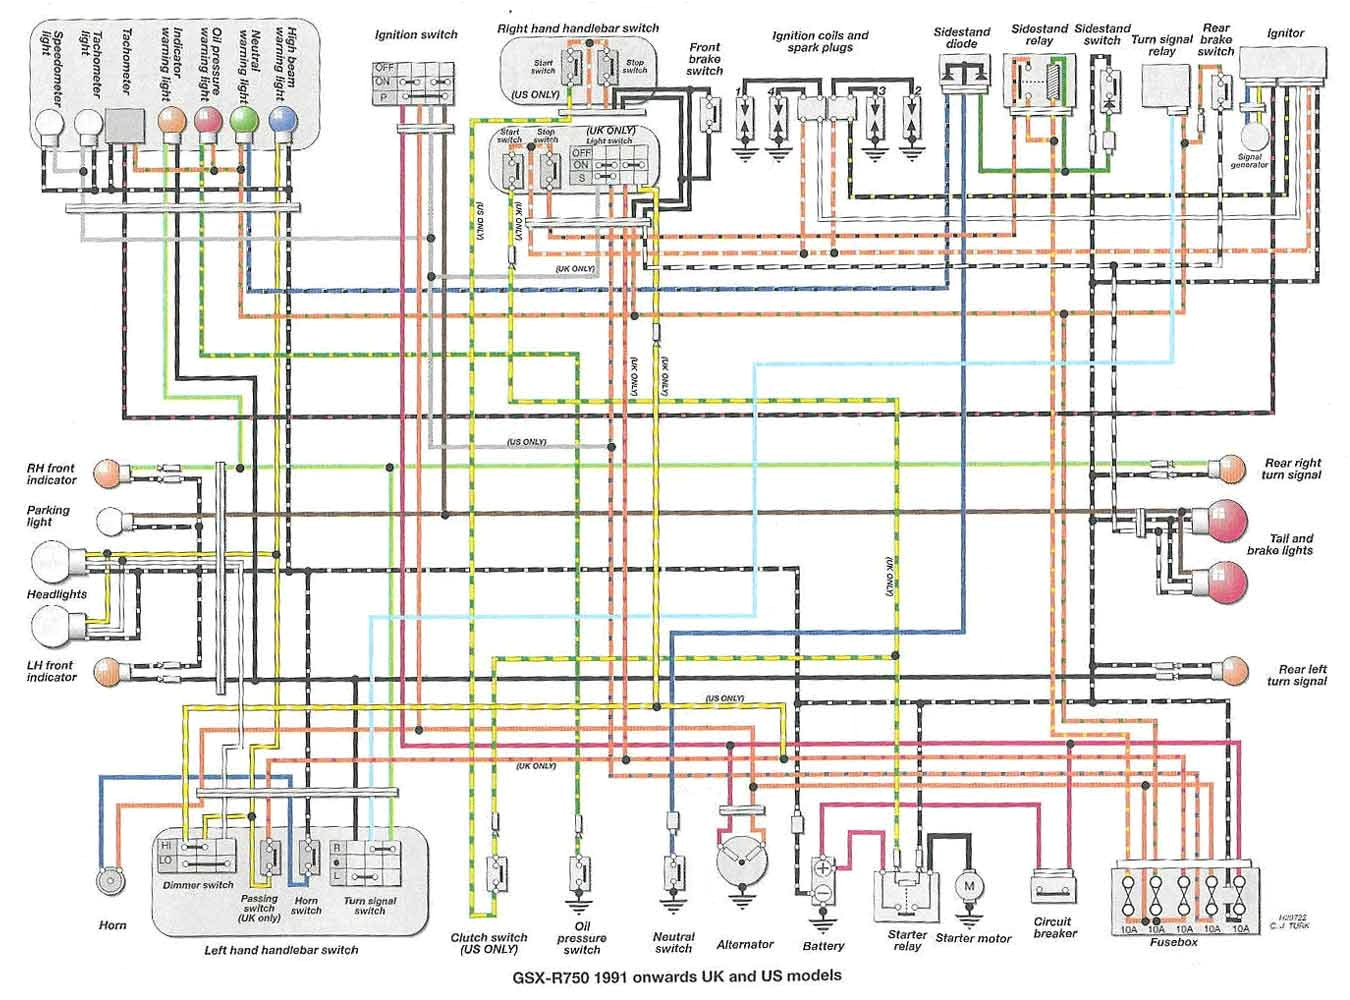 wiring diagram for 2003 gsxr 750 wiring diagram for youwiring diagram 2002 suzuki gsxr 600 wiring